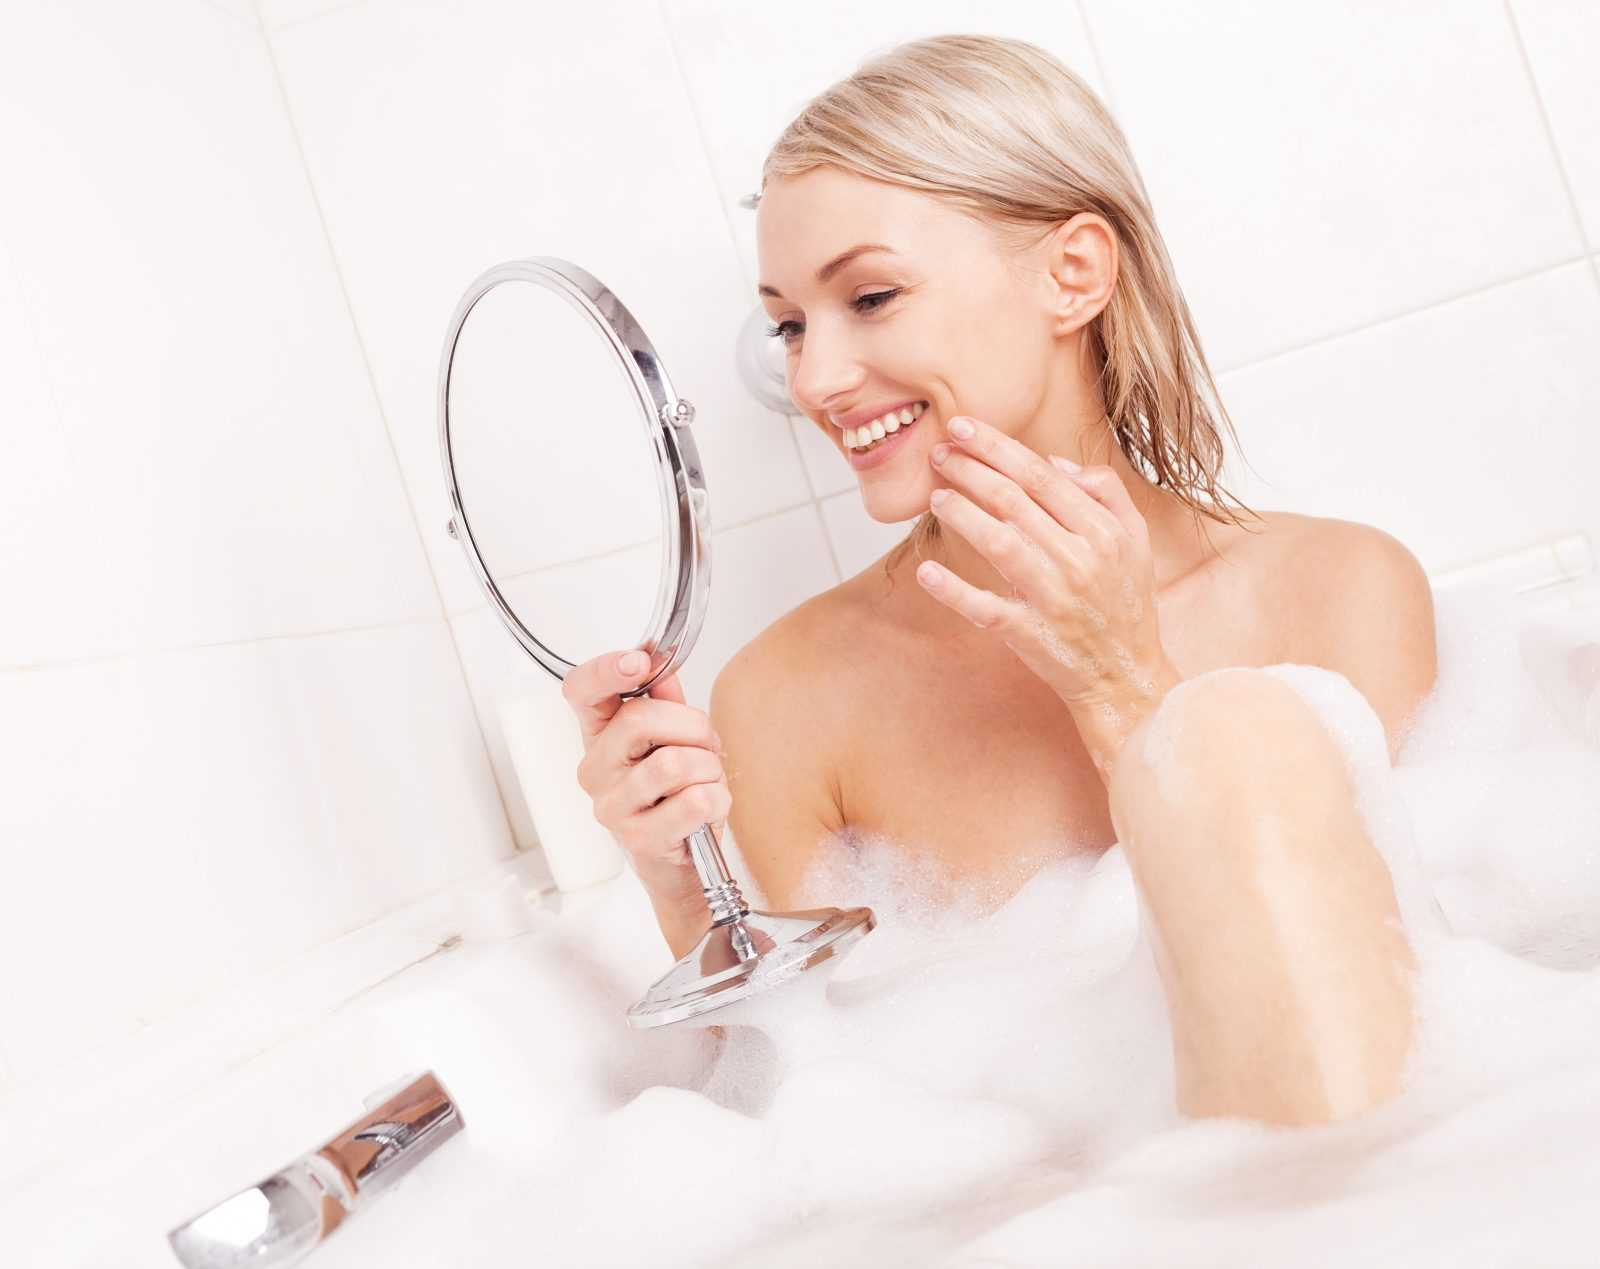 http://www.levisagewellness.com/try-hydralift-in-edmonds-for-more-youthful-skin/